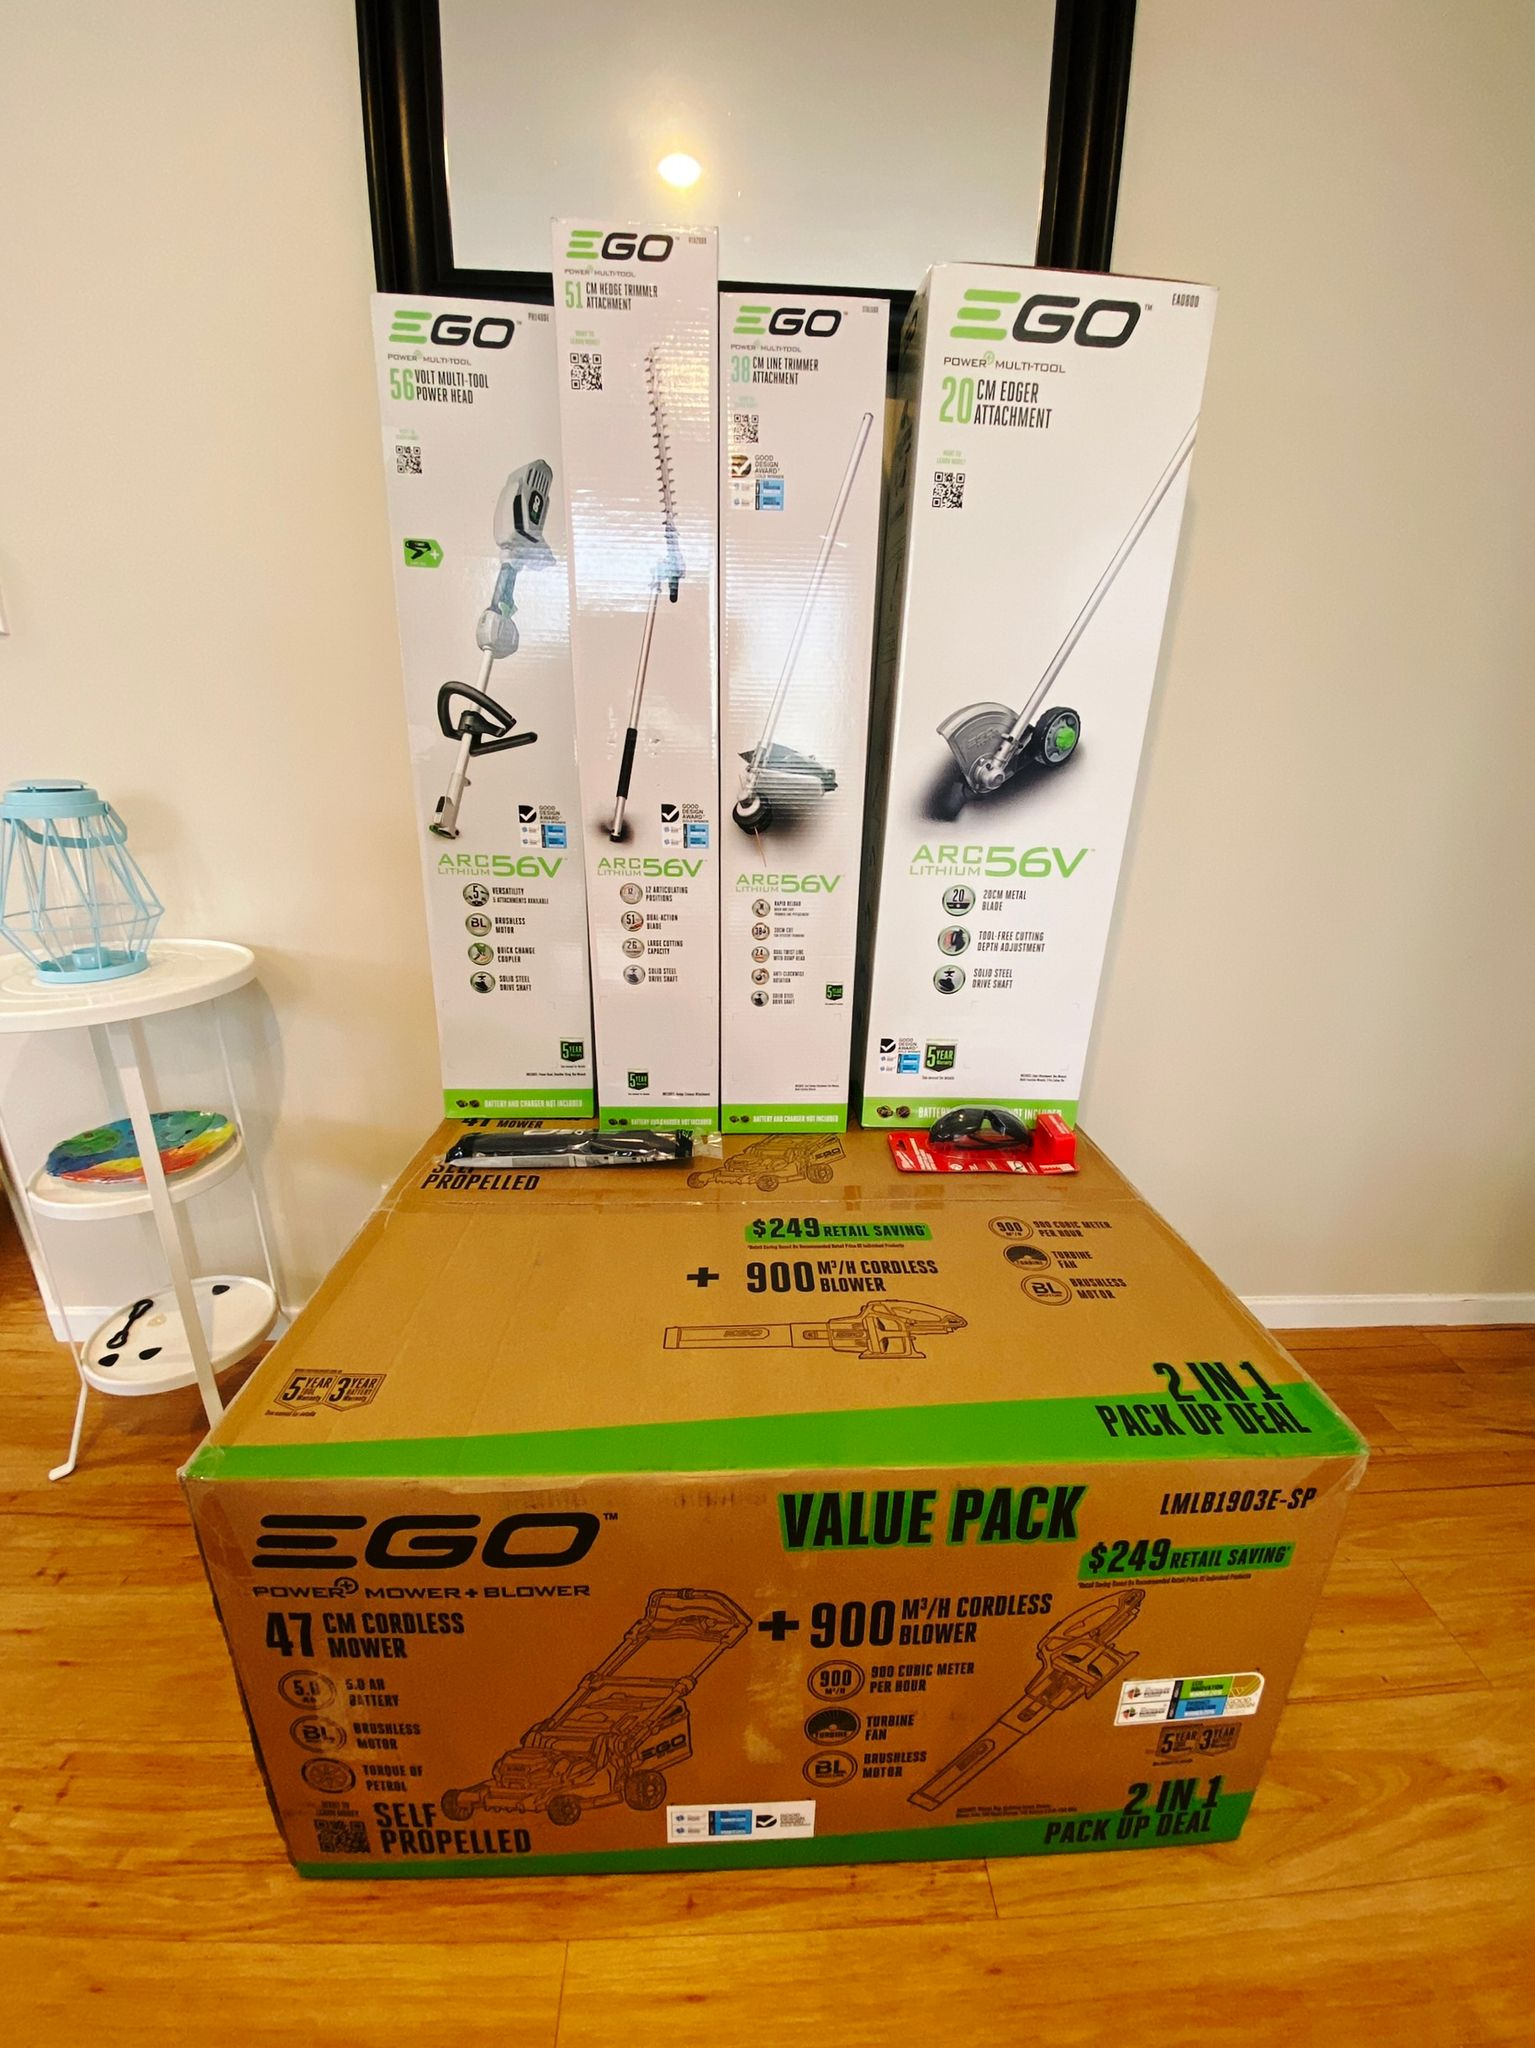 A photo of a BUNCH of big boxes containing all battery-powered equipment: lawn mower, blower, plus an edger, hedge trimmer, and line trimmer attachment and the head they attach onto. Also a shoulder strap and a pair of polarised protective glasses.